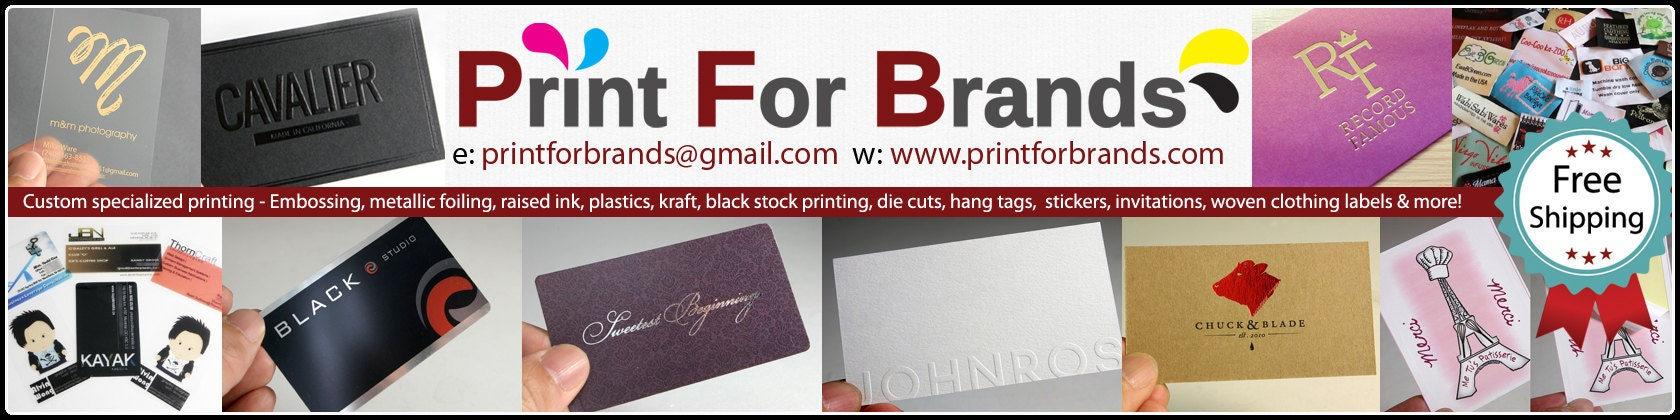 Custom business printing and woven fabric labels by printforbrands